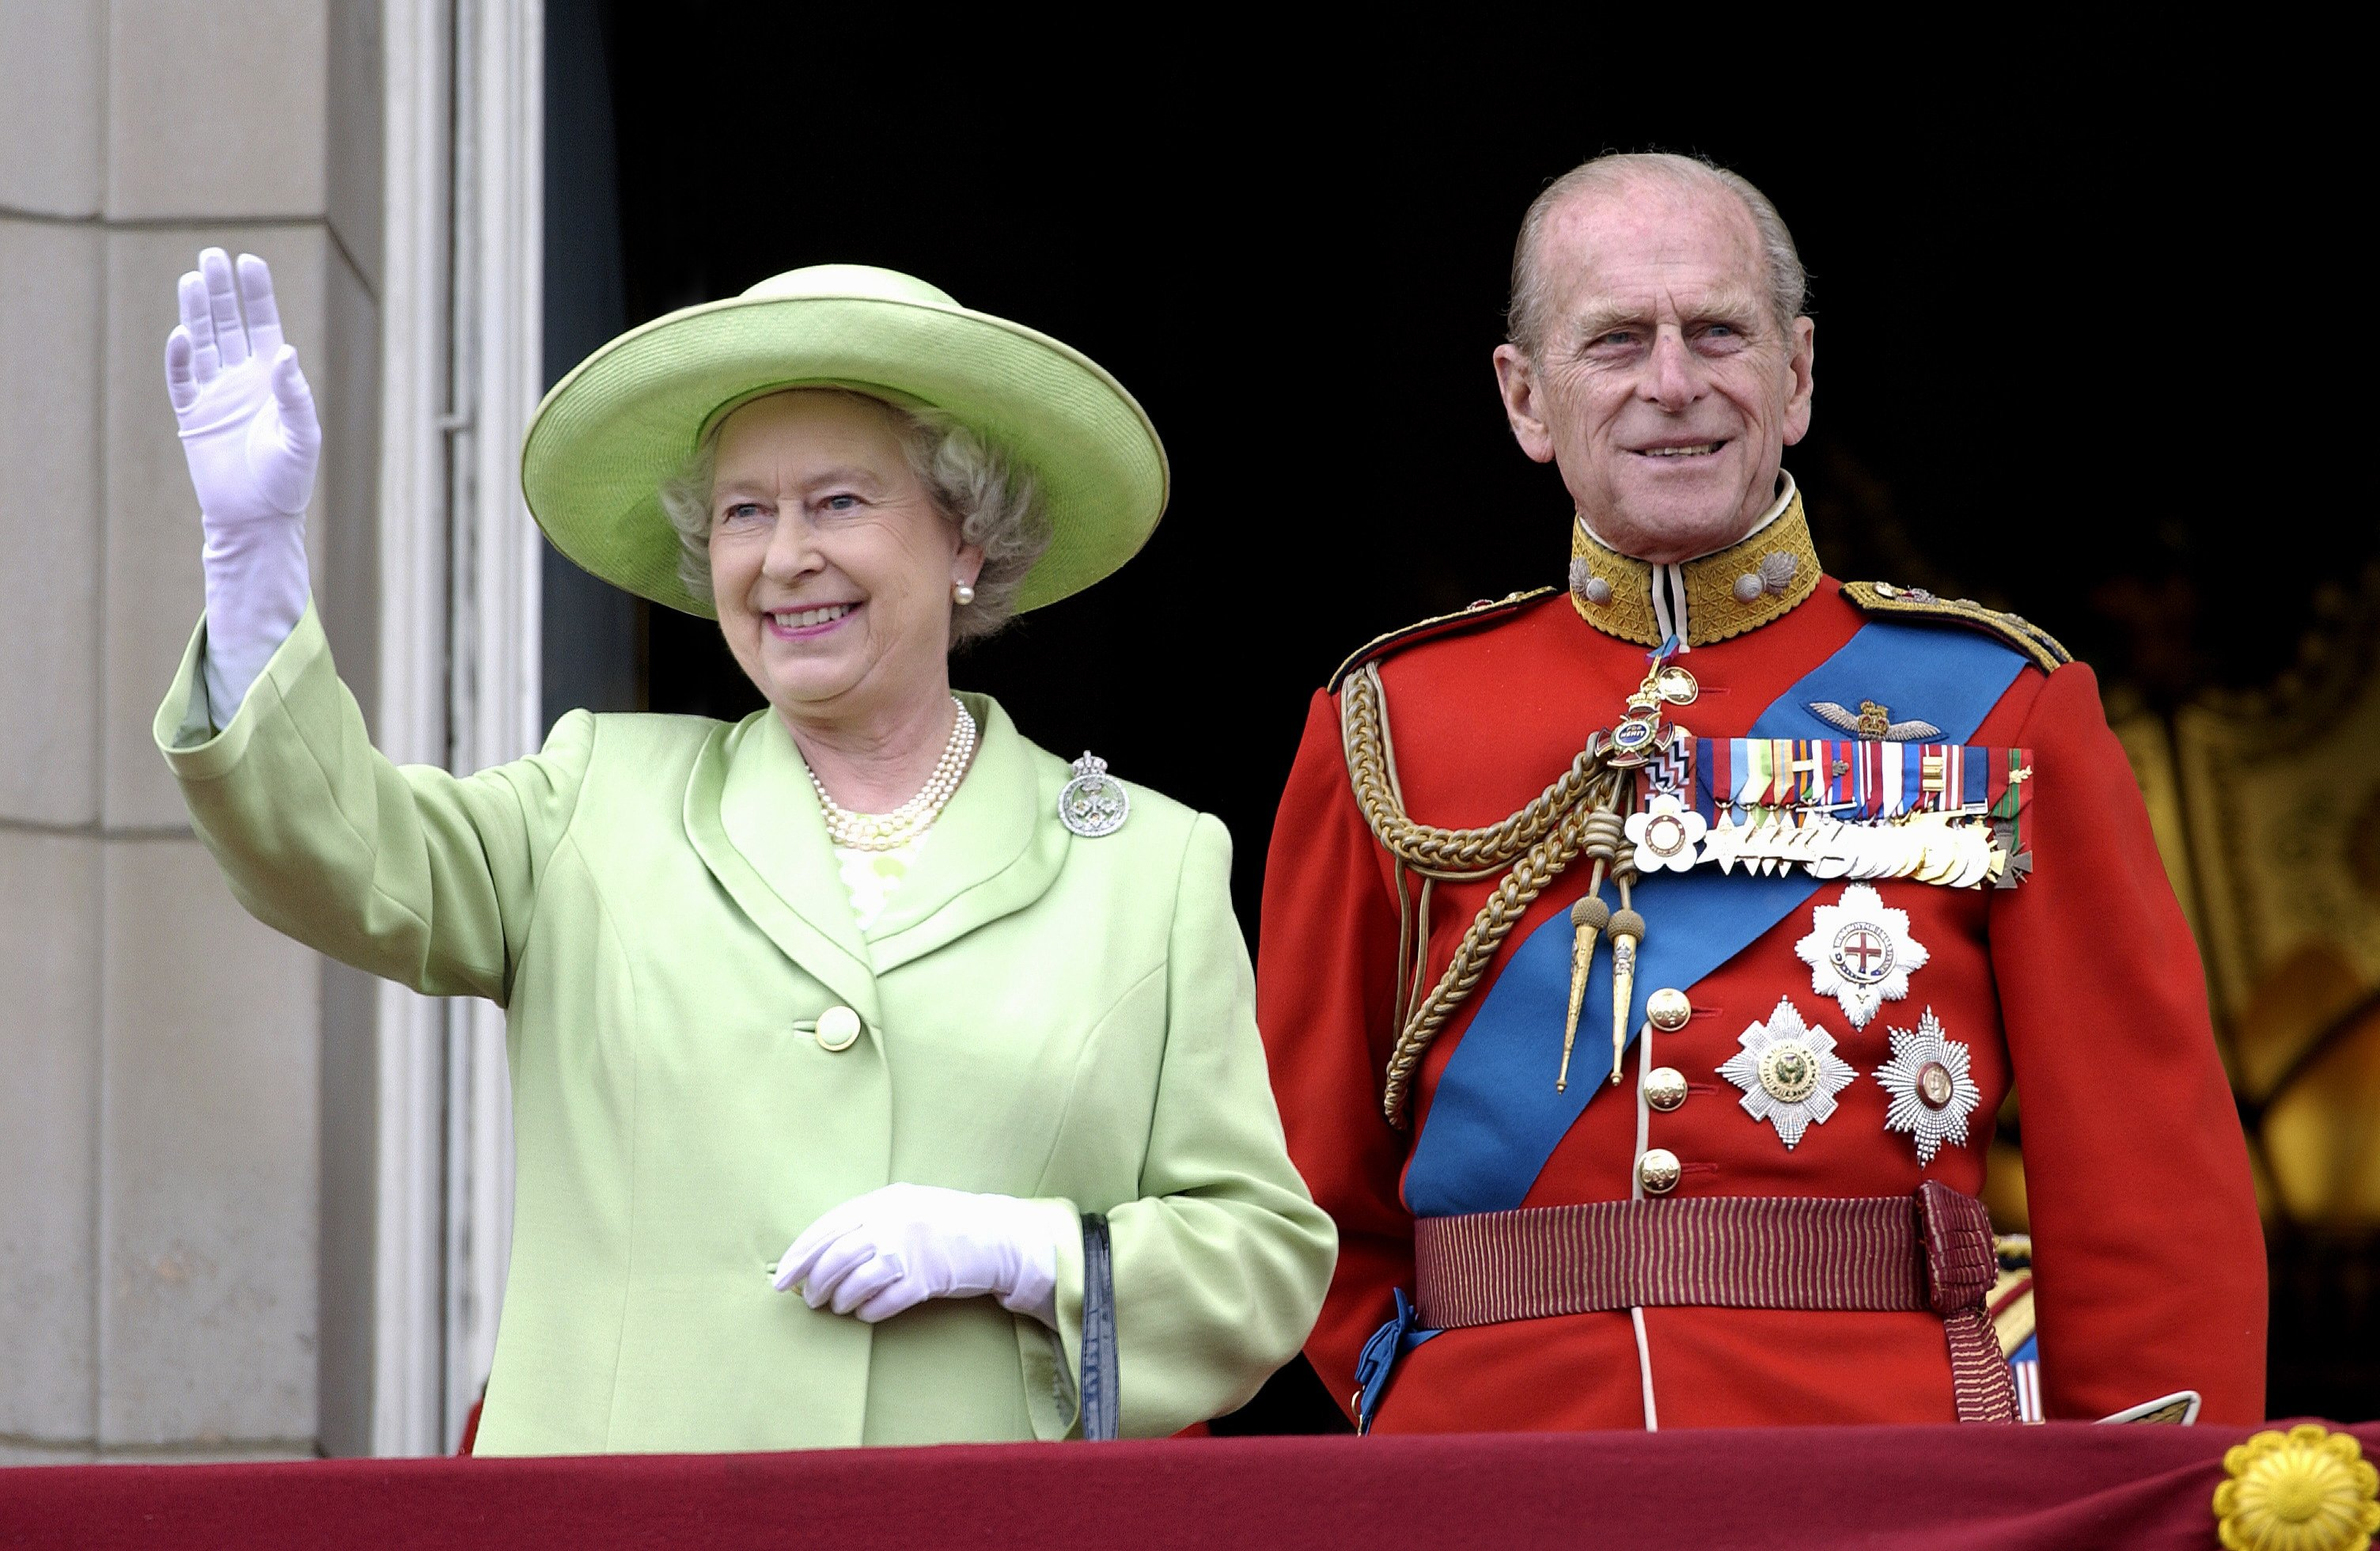 Queen Elizabeth II and Prince Philip on the balcony of Buckingham palace from Troop the Colour 2001. London, England.   Photo: Getty Images